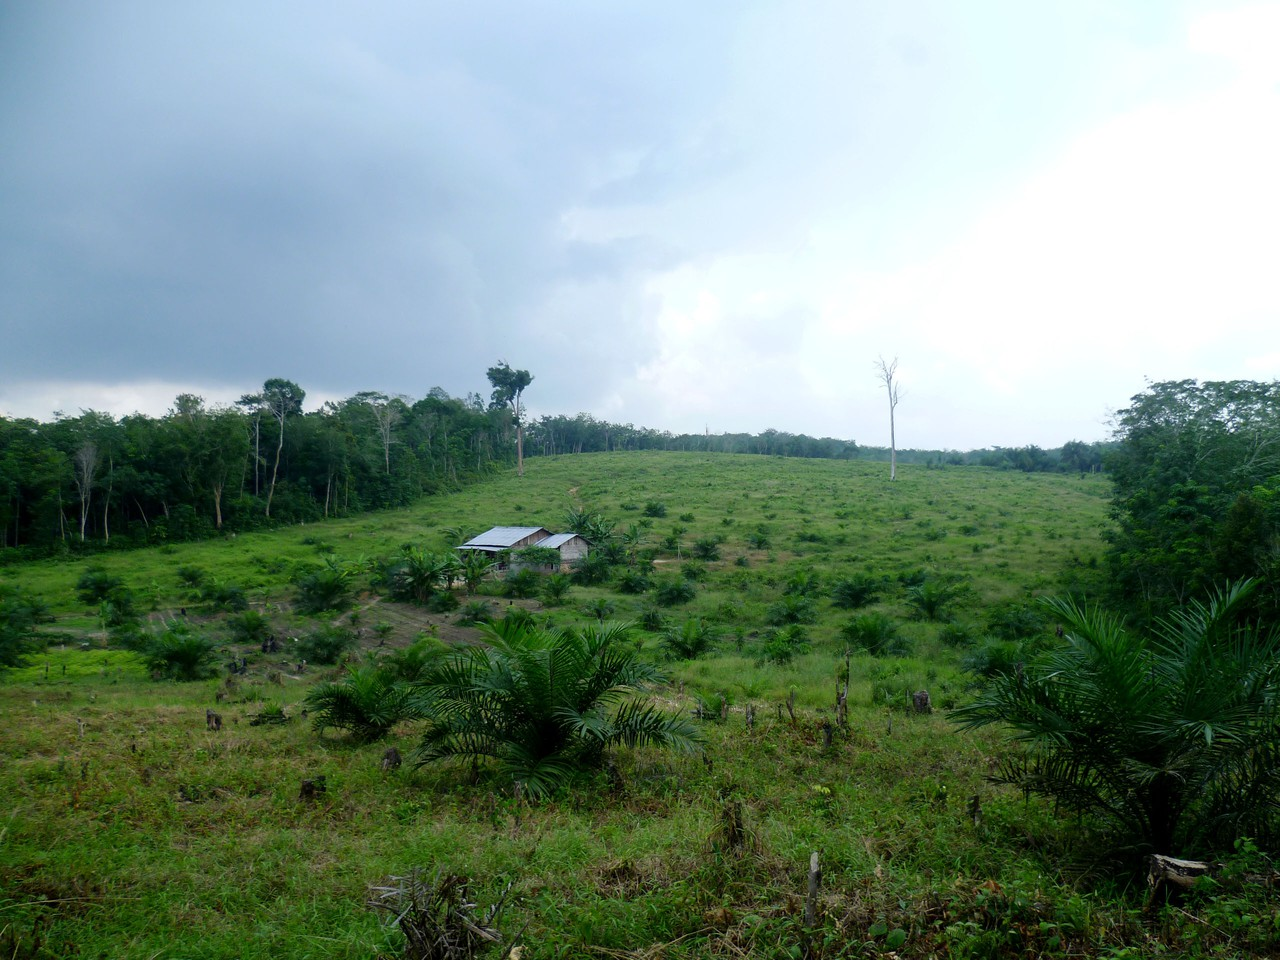 Young palm oil plantation established between forest areas (Credit: Clifton Sabajo)